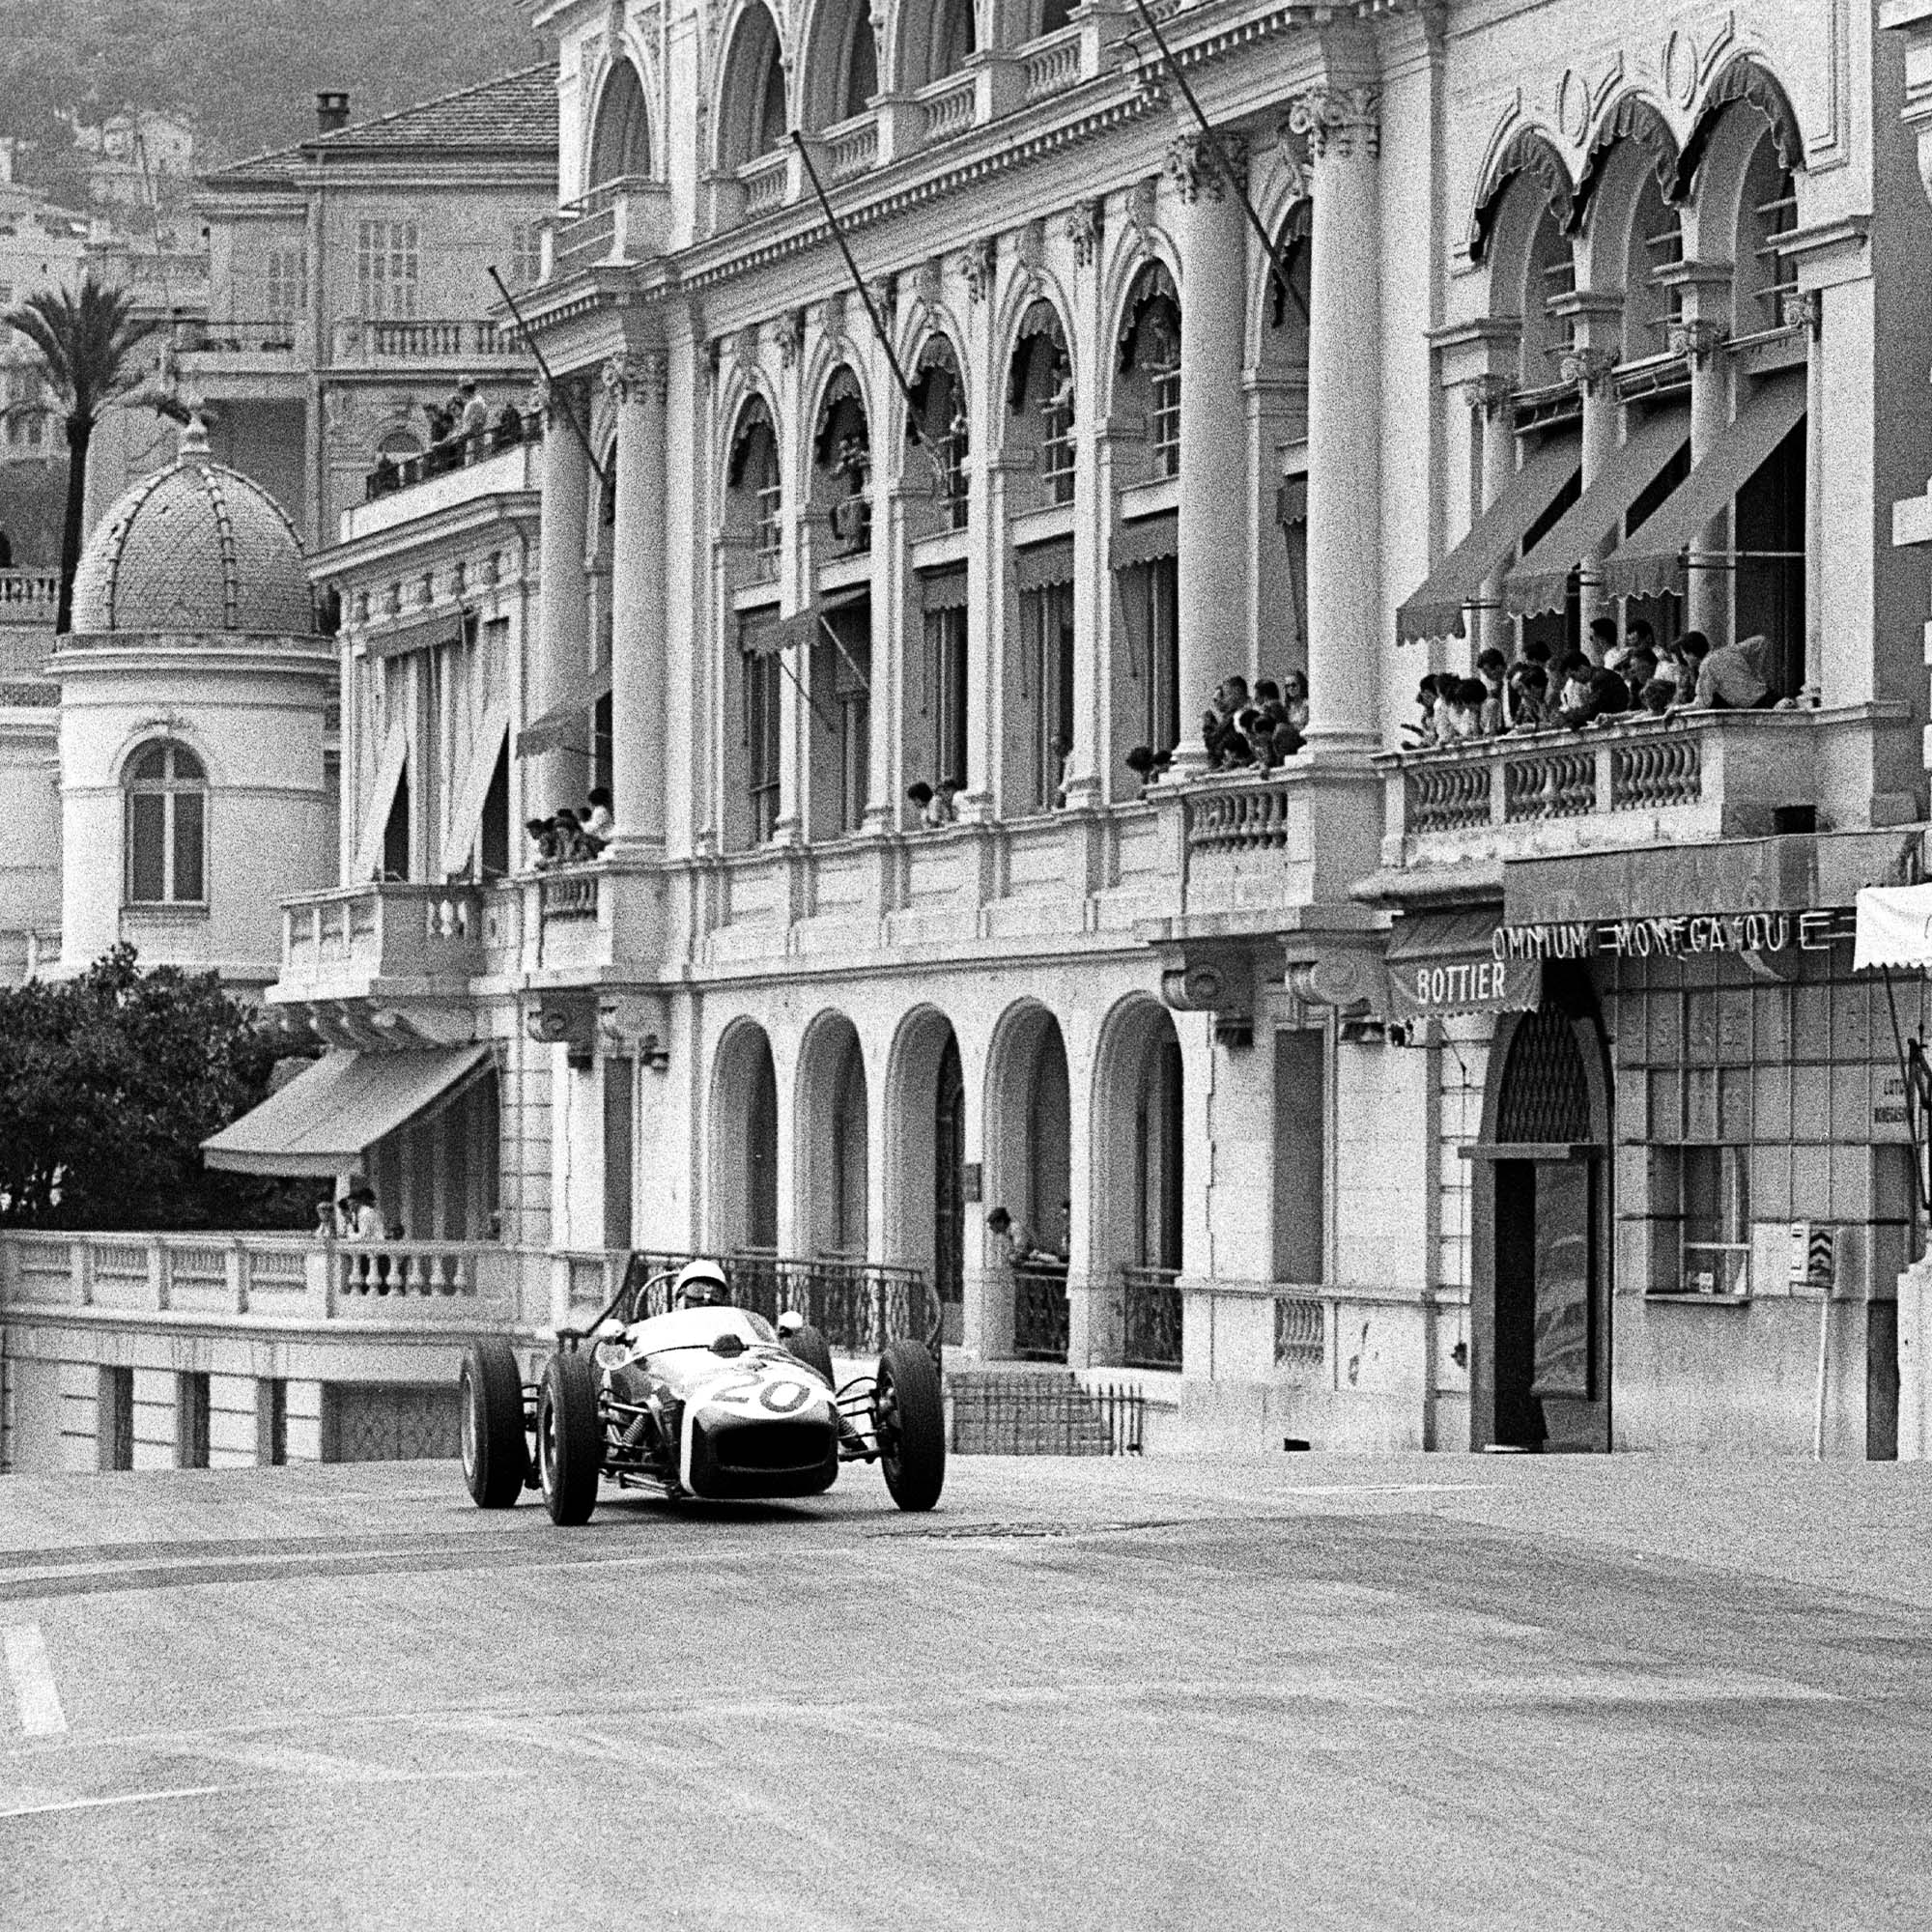 Stirling Moss up the hill at Monaco in 1961 square